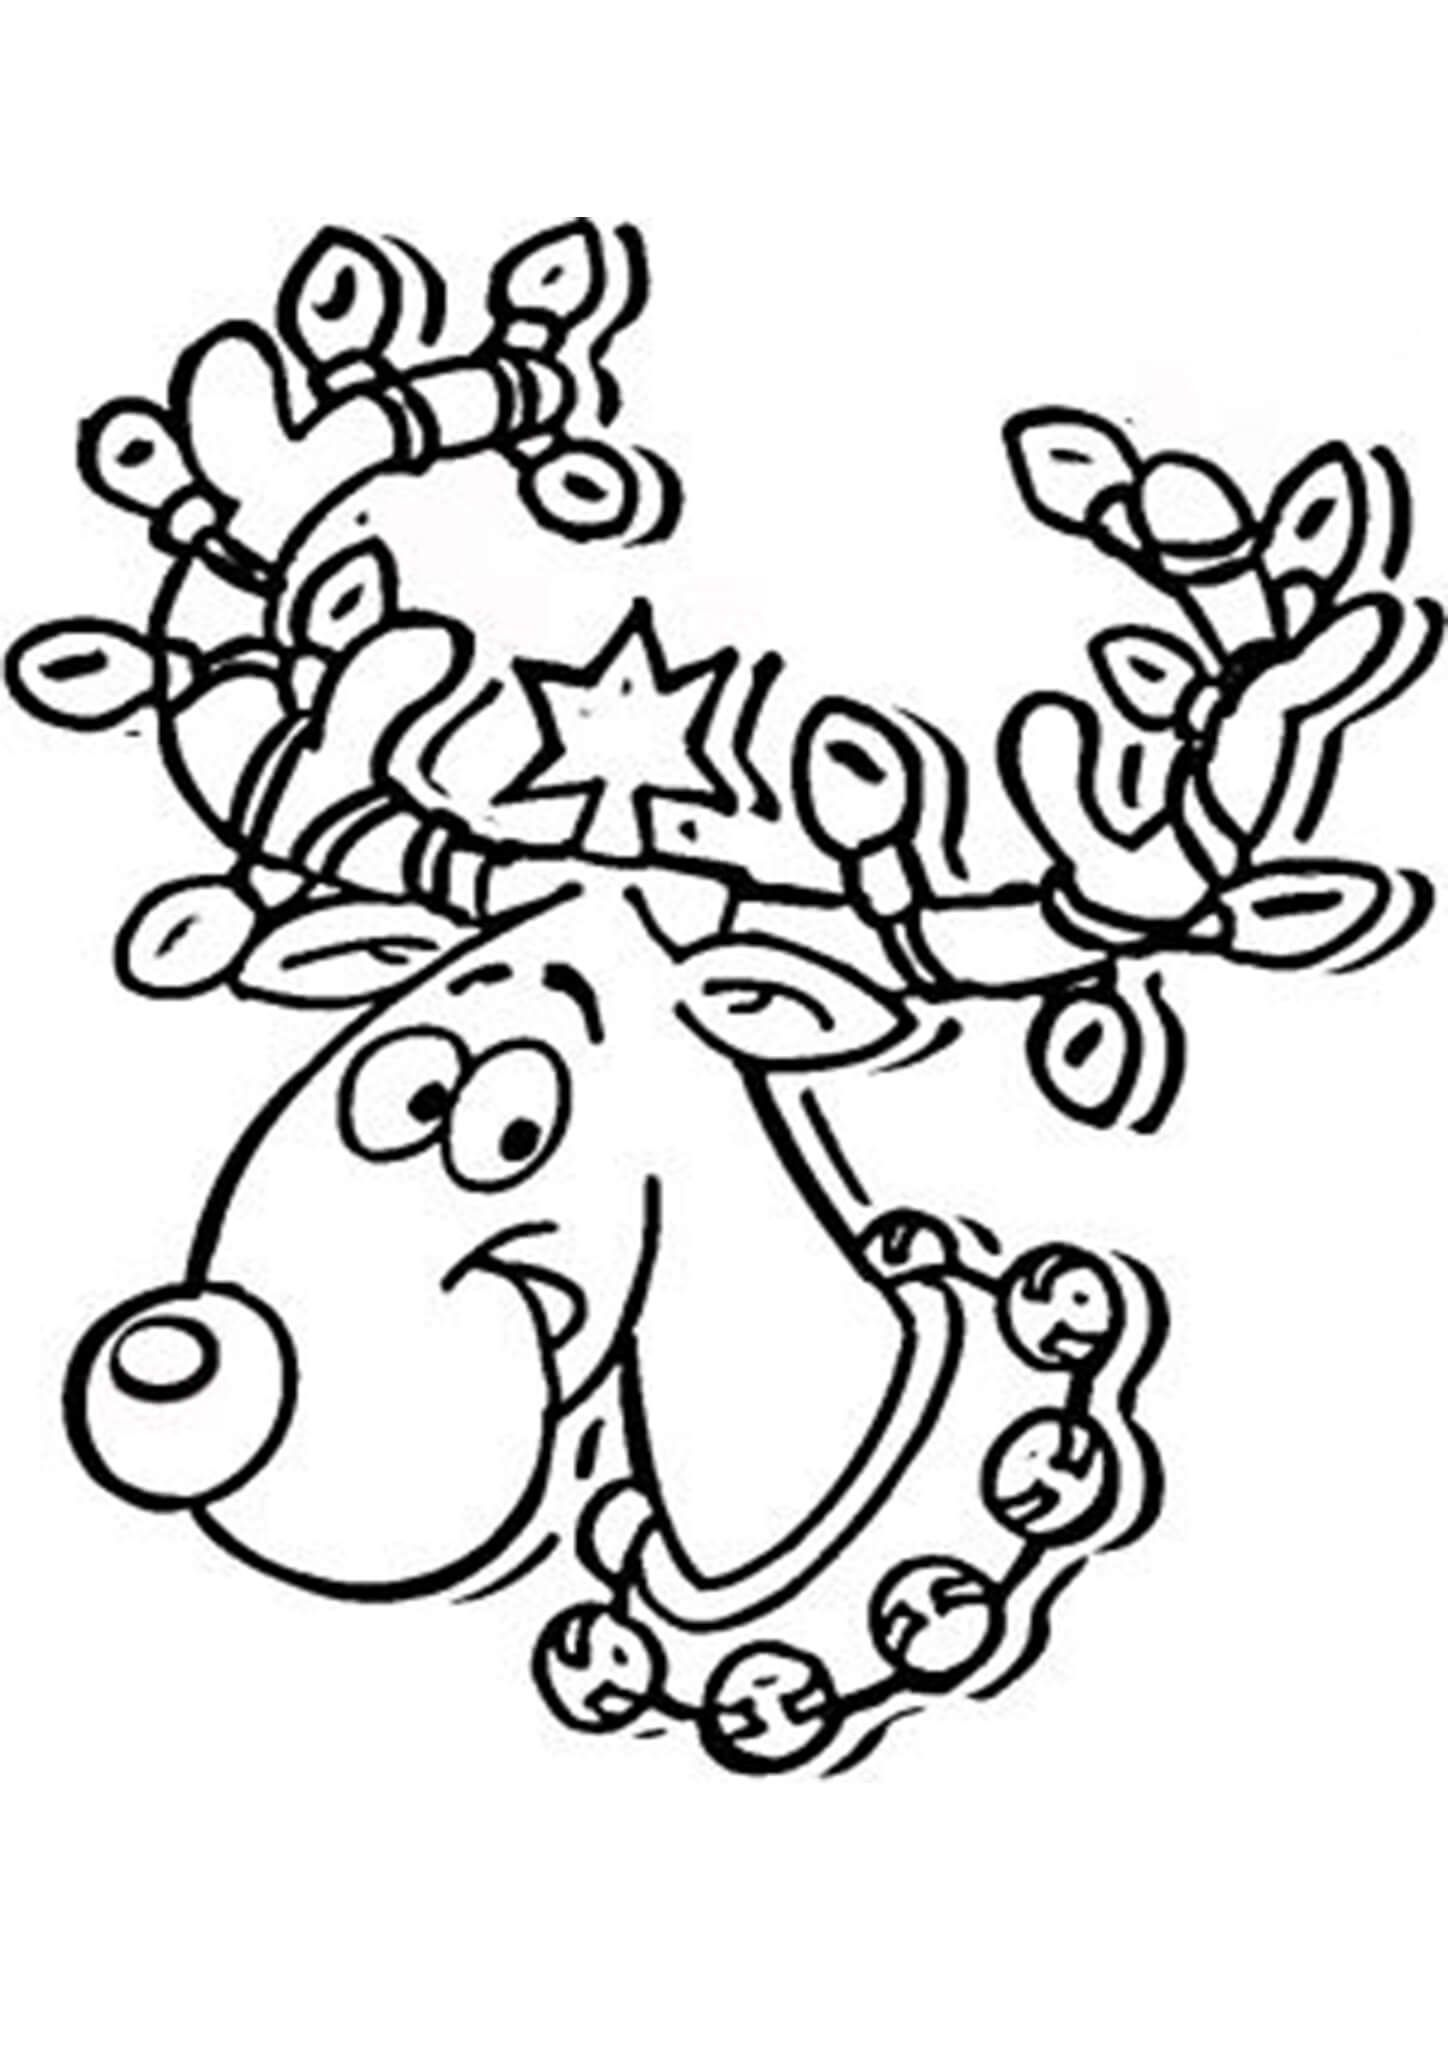 8214803f31f1193e54fbca1ac5f61cff » Christmas Coloring Pictures Reindeer